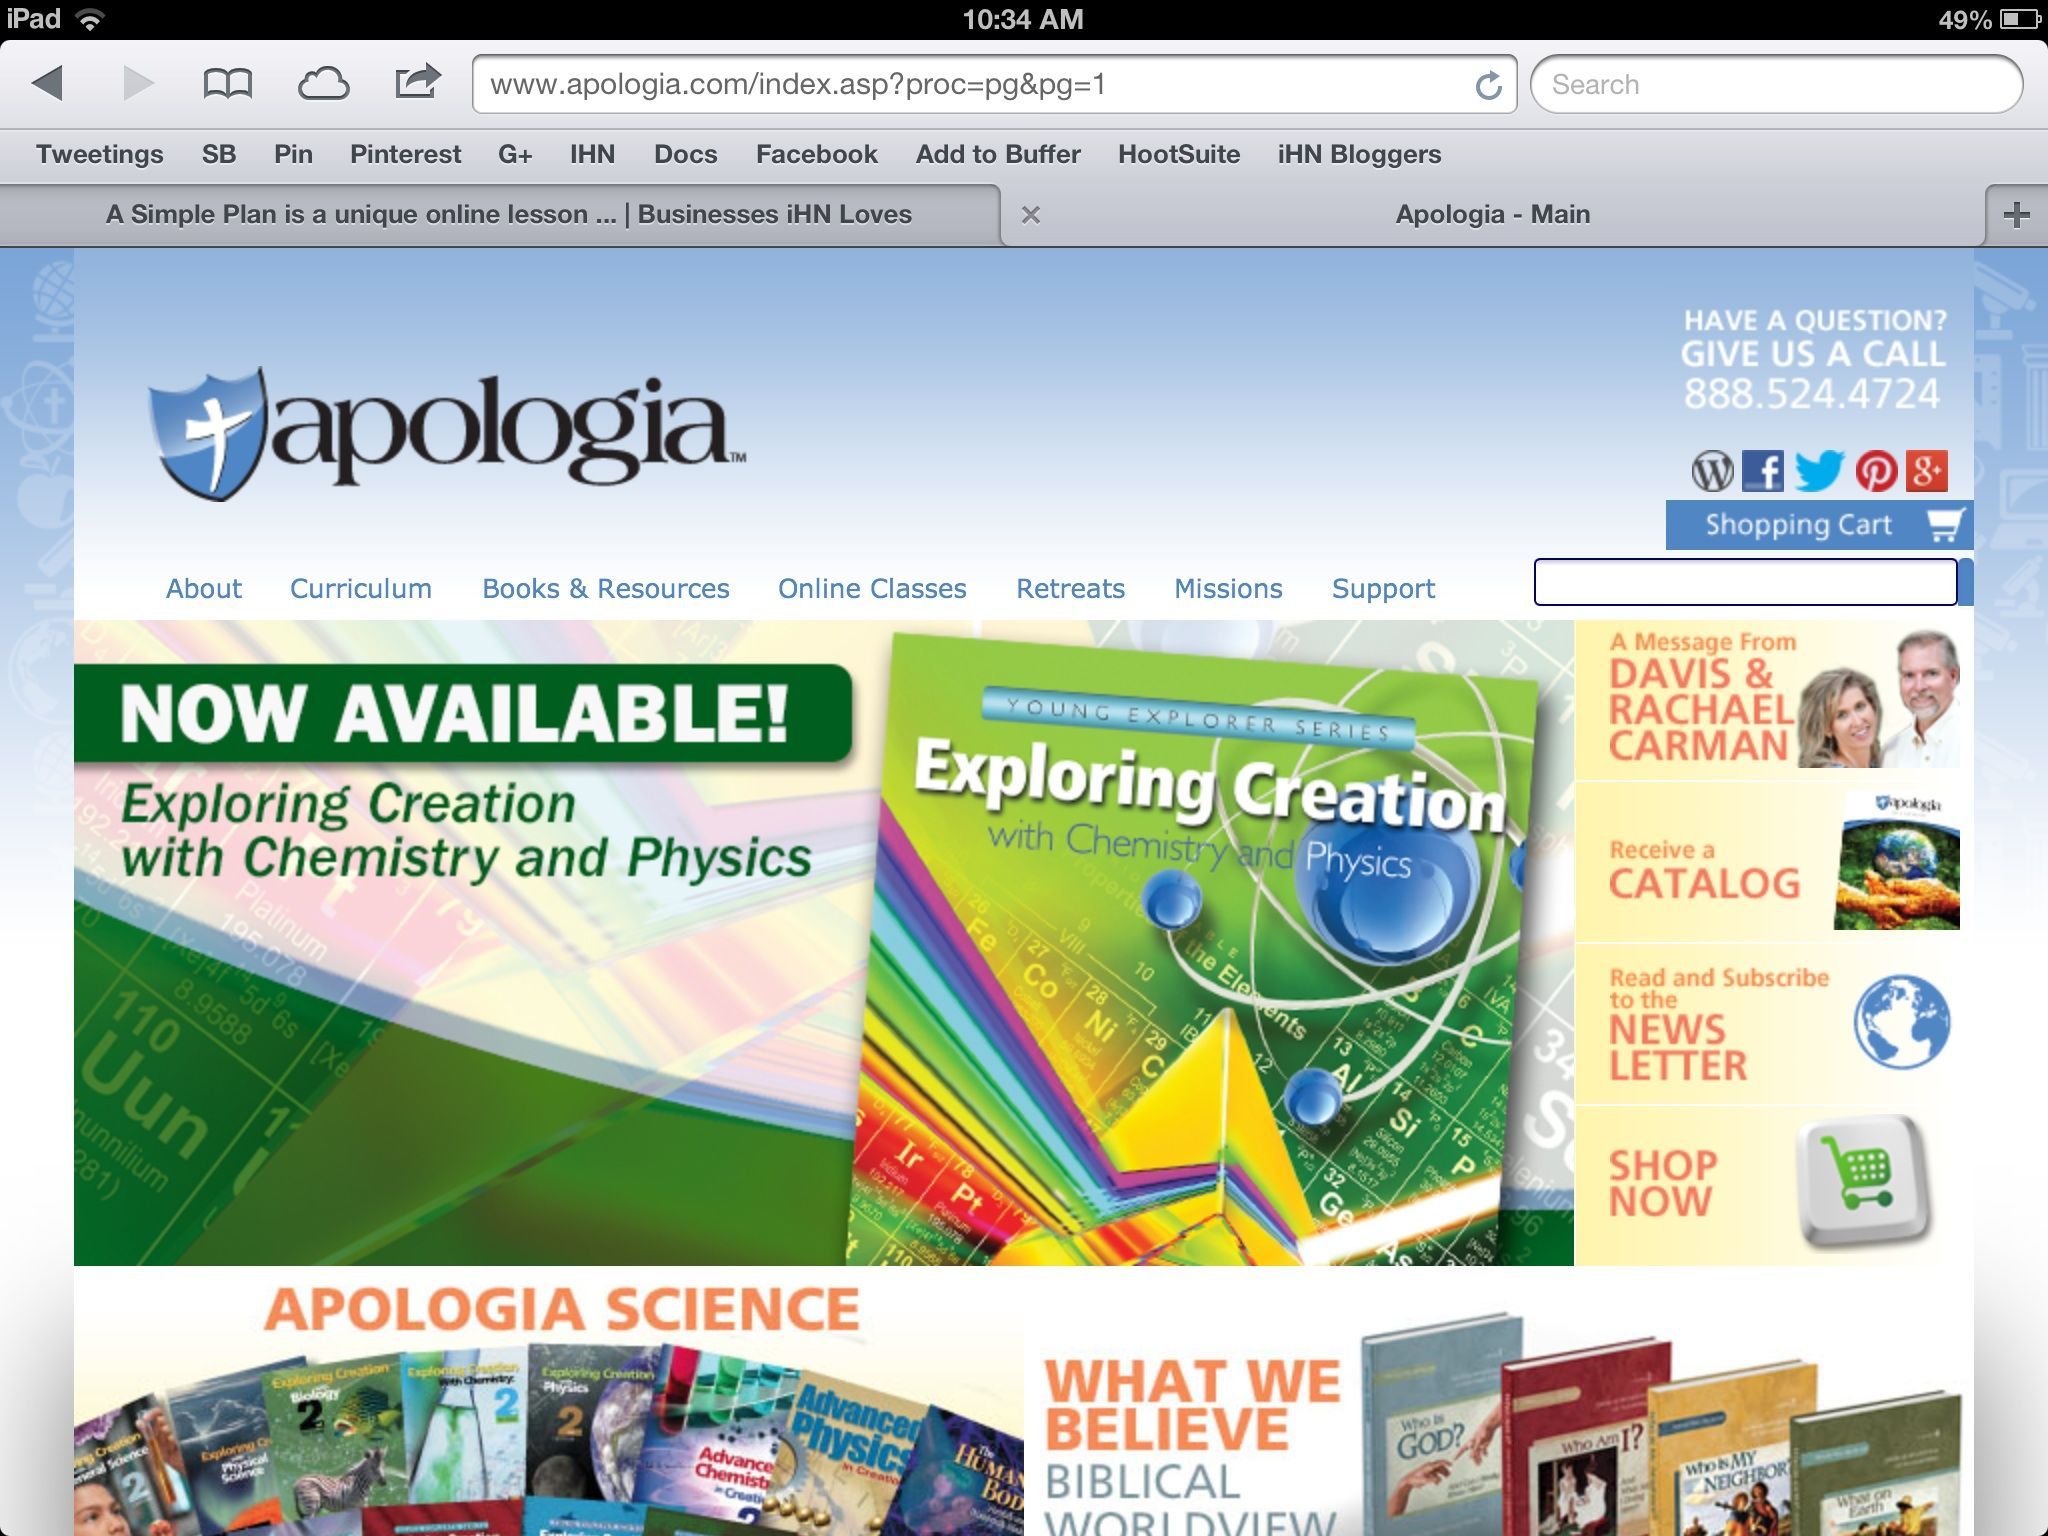 Apologia publishes homeschooling curriculum and resources